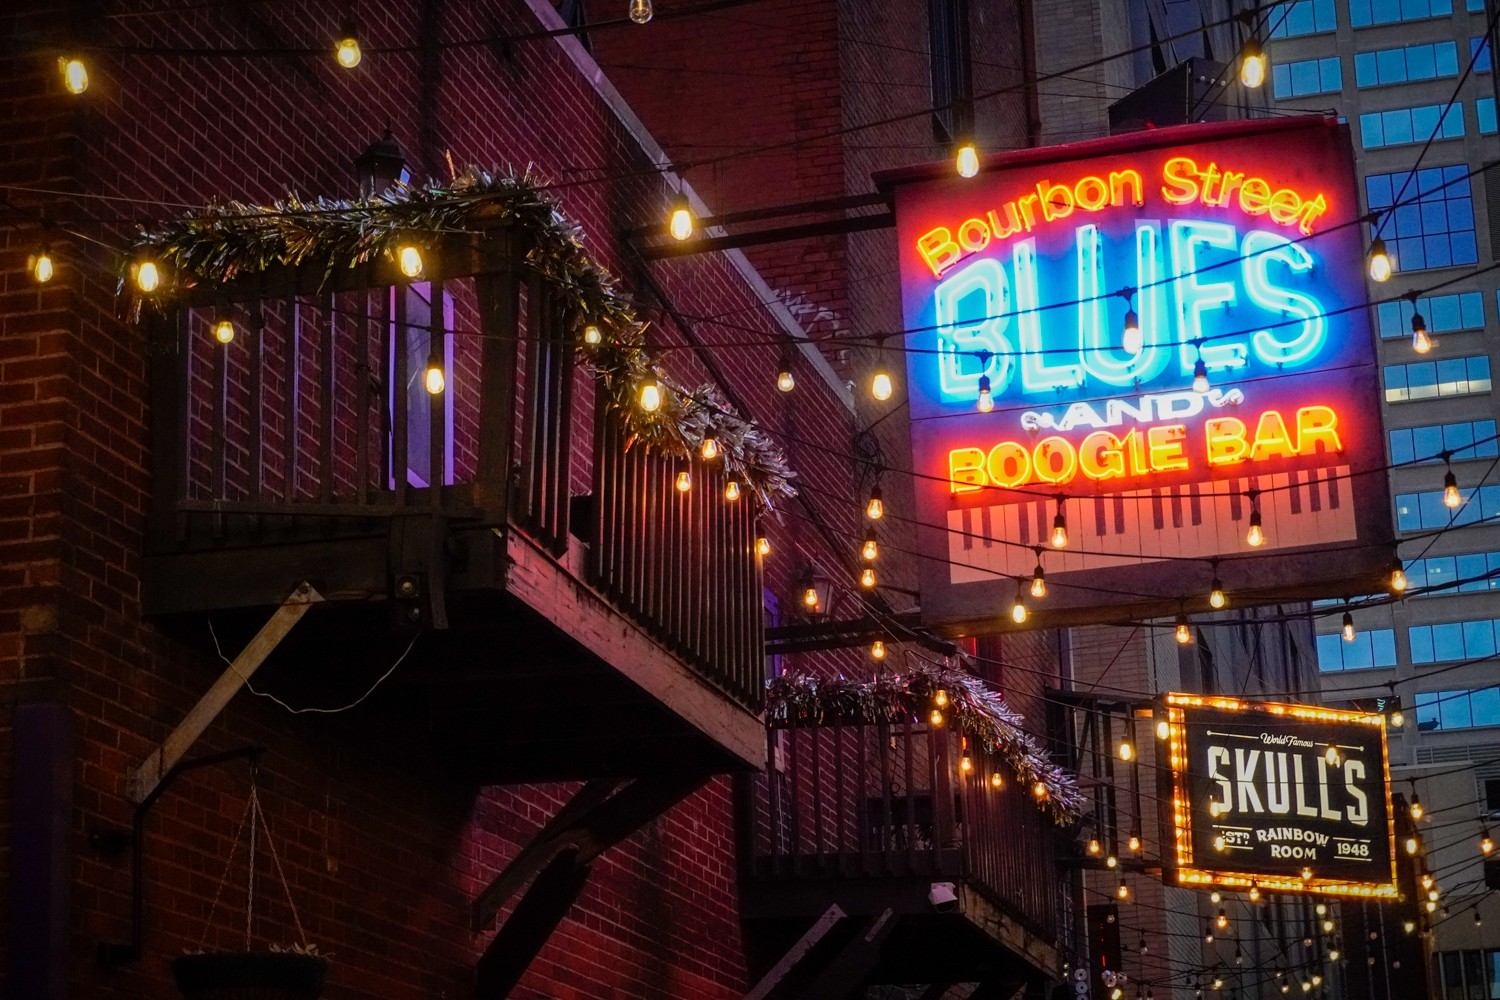 4 Legendary Blues Musicians You Didn't Know Performed at Bourbon Street Blues & Boogie Bar